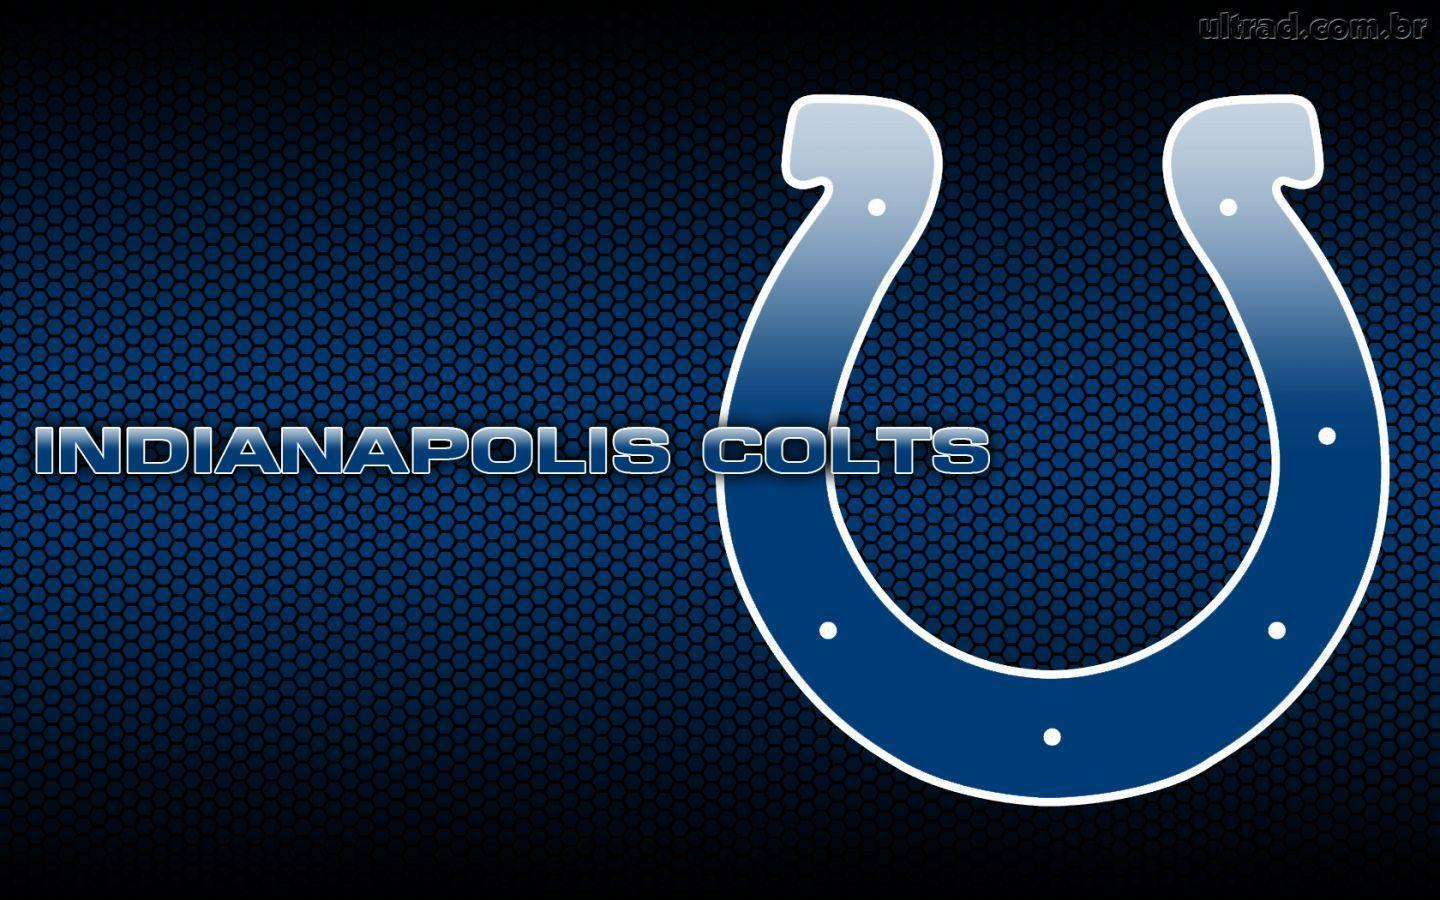 Wallpaper Blink - Indianapolis Colts Wallpaper HD 7 - 1440 X 900 for ...